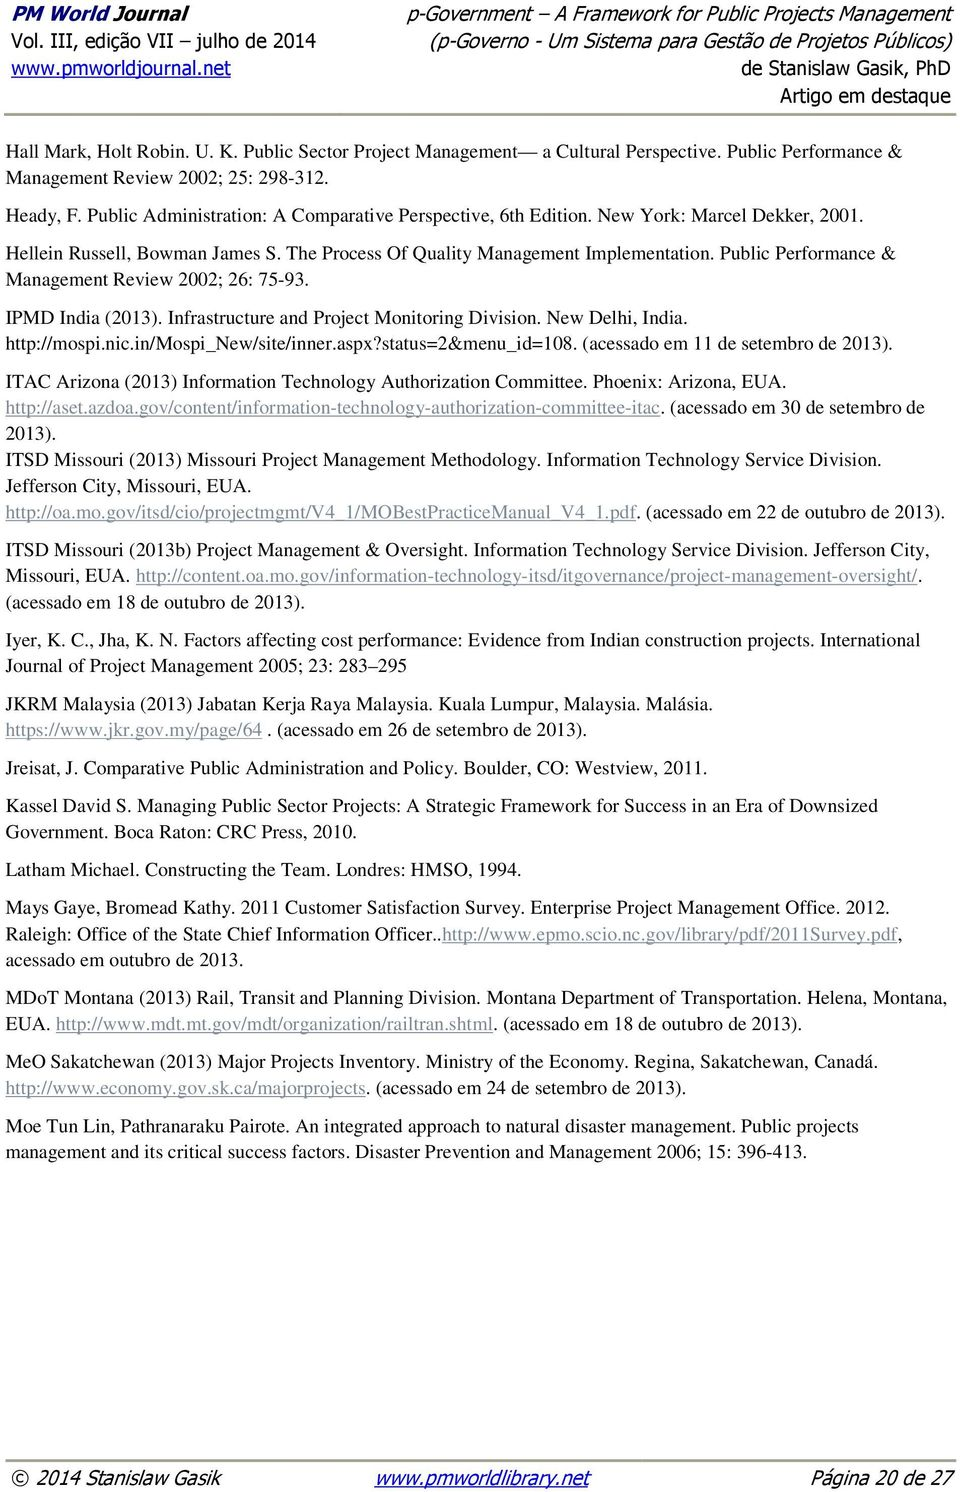 Public Performance & Management Review 2002; 26: 75-93. IPMD India (2013). Infrastructure and Project Monitoring Division. New Delhi, India. http://mospi.nic.in/mospi_new/site/inner.aspx?